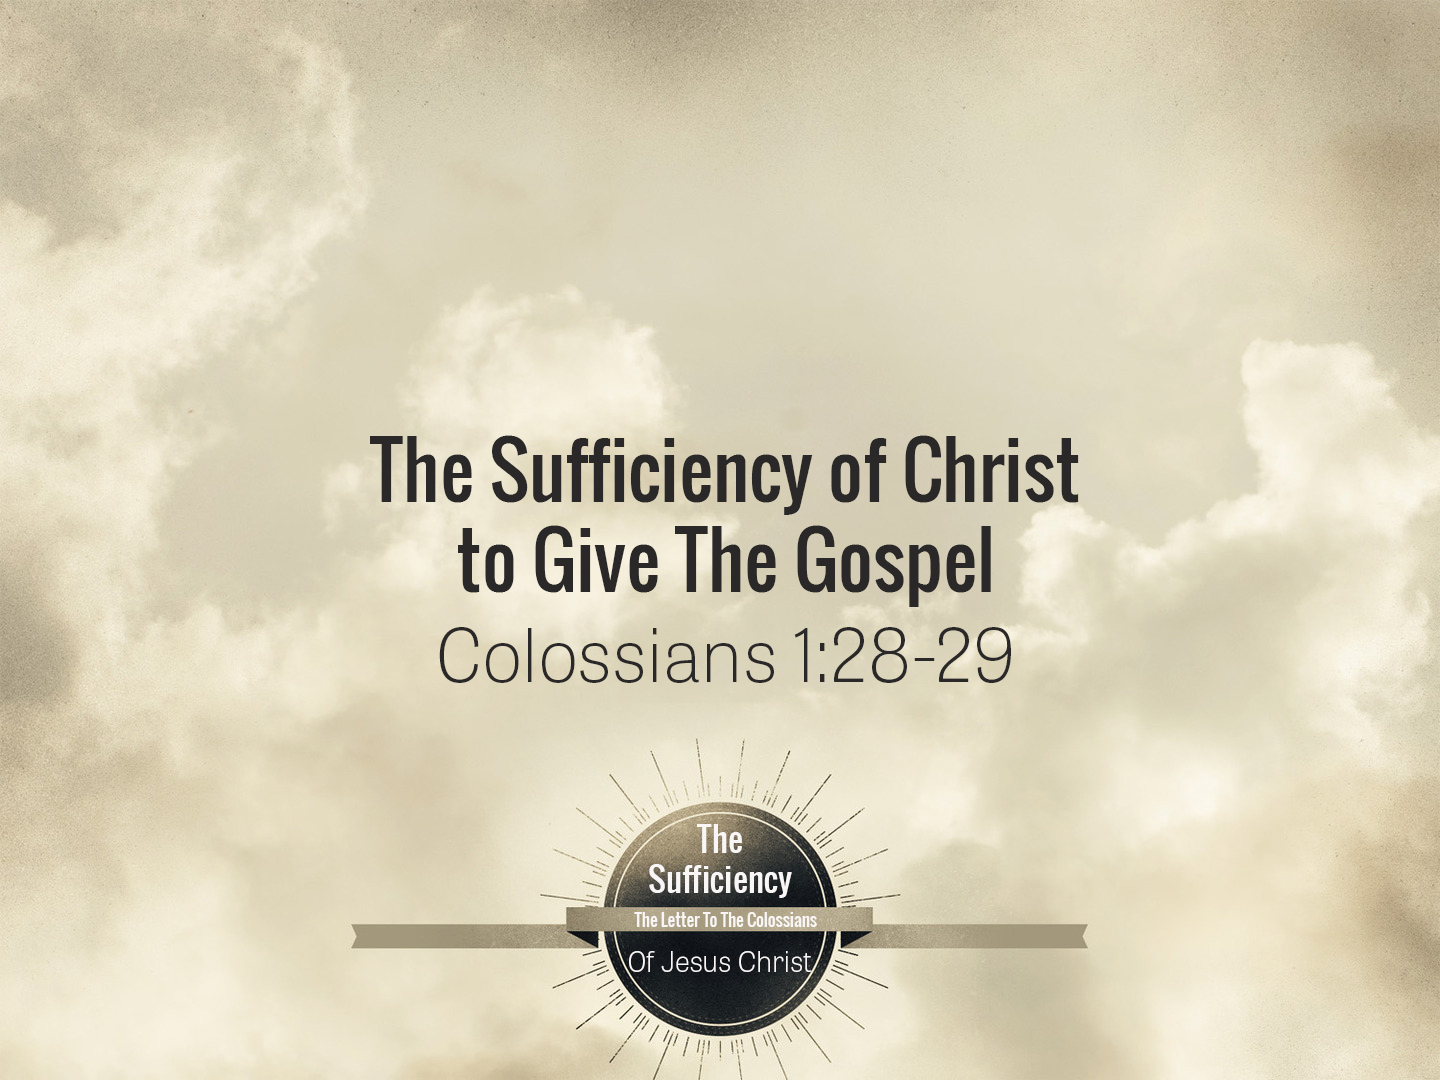 Colossians 1v28-29 The Sufficiency Of Christ To Give The Gospel